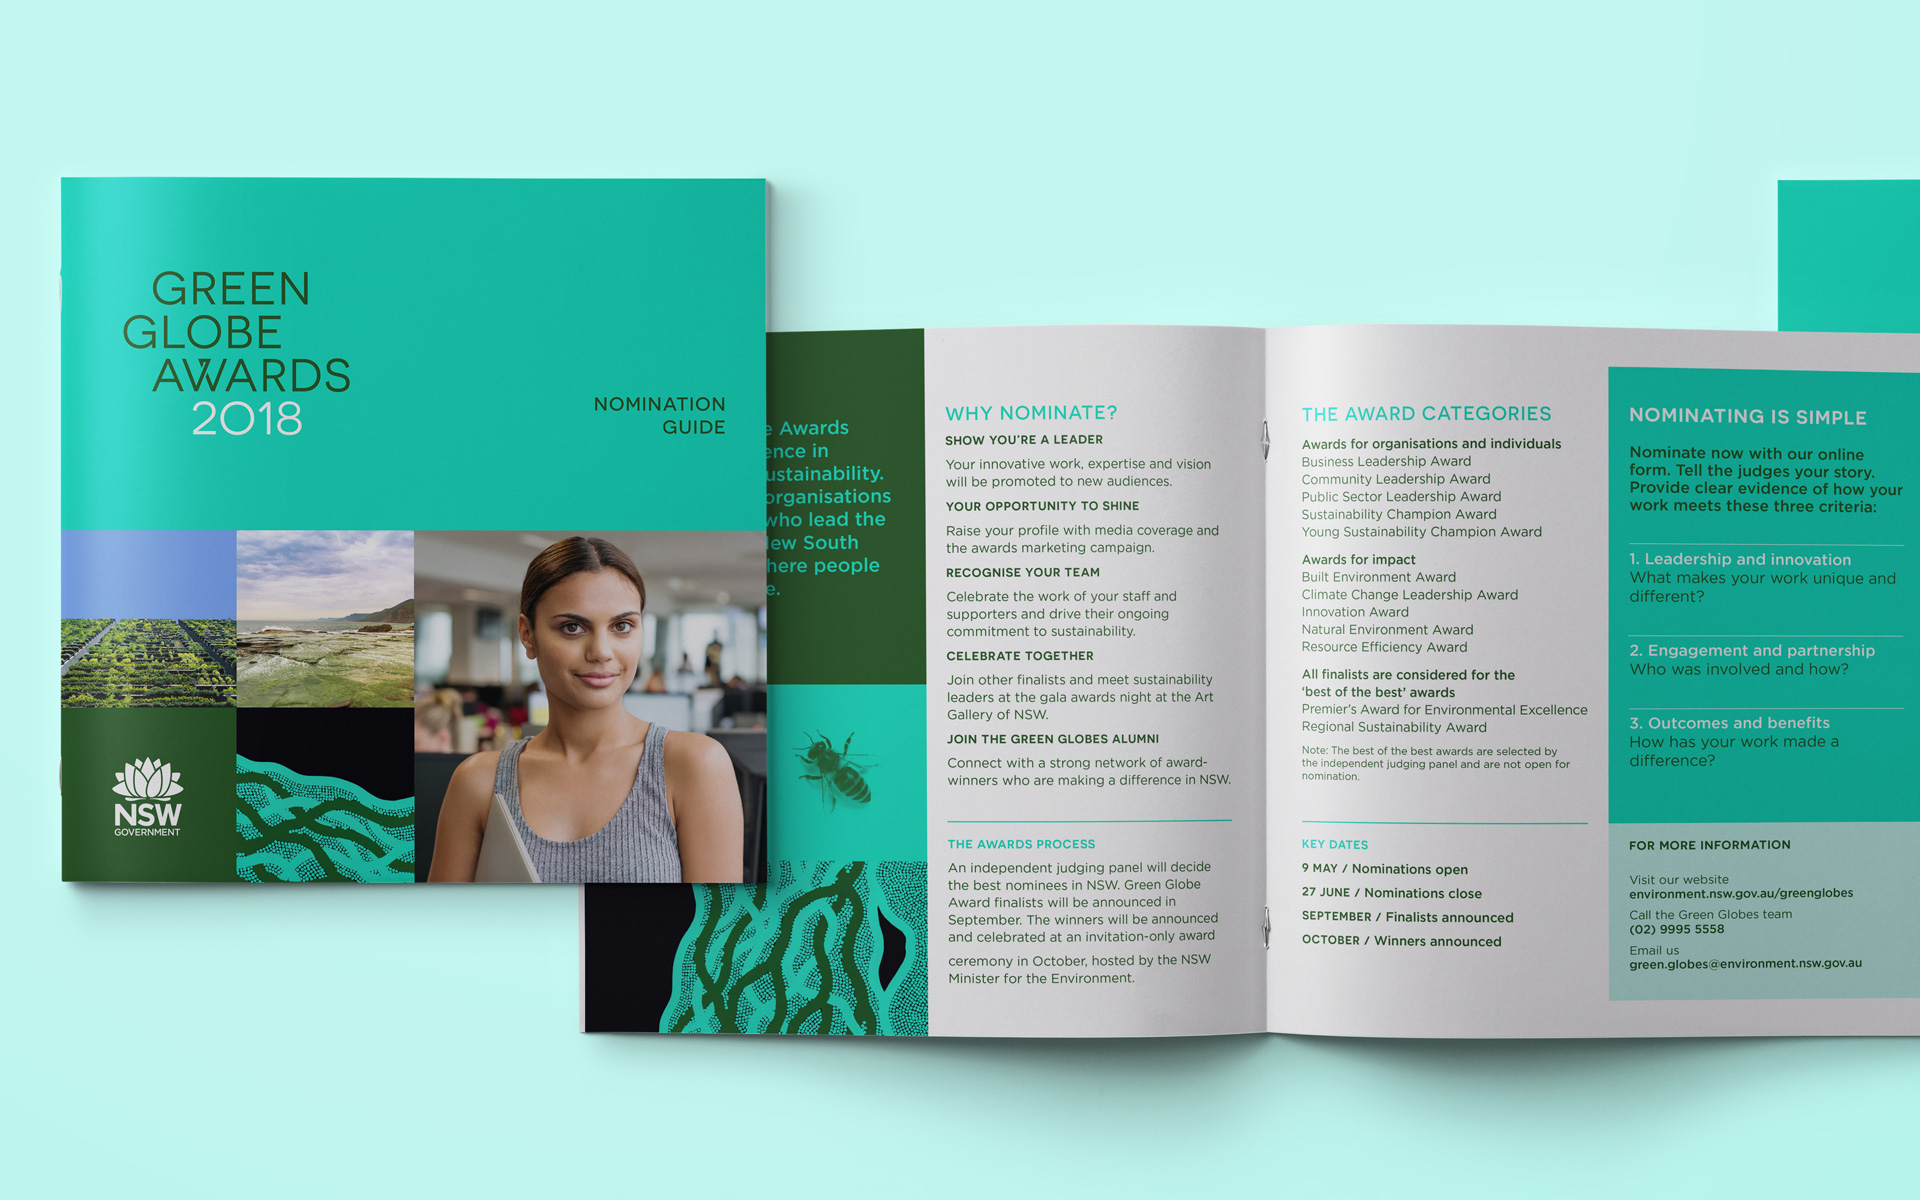 The Green Globe Awards rebrand nomination guide